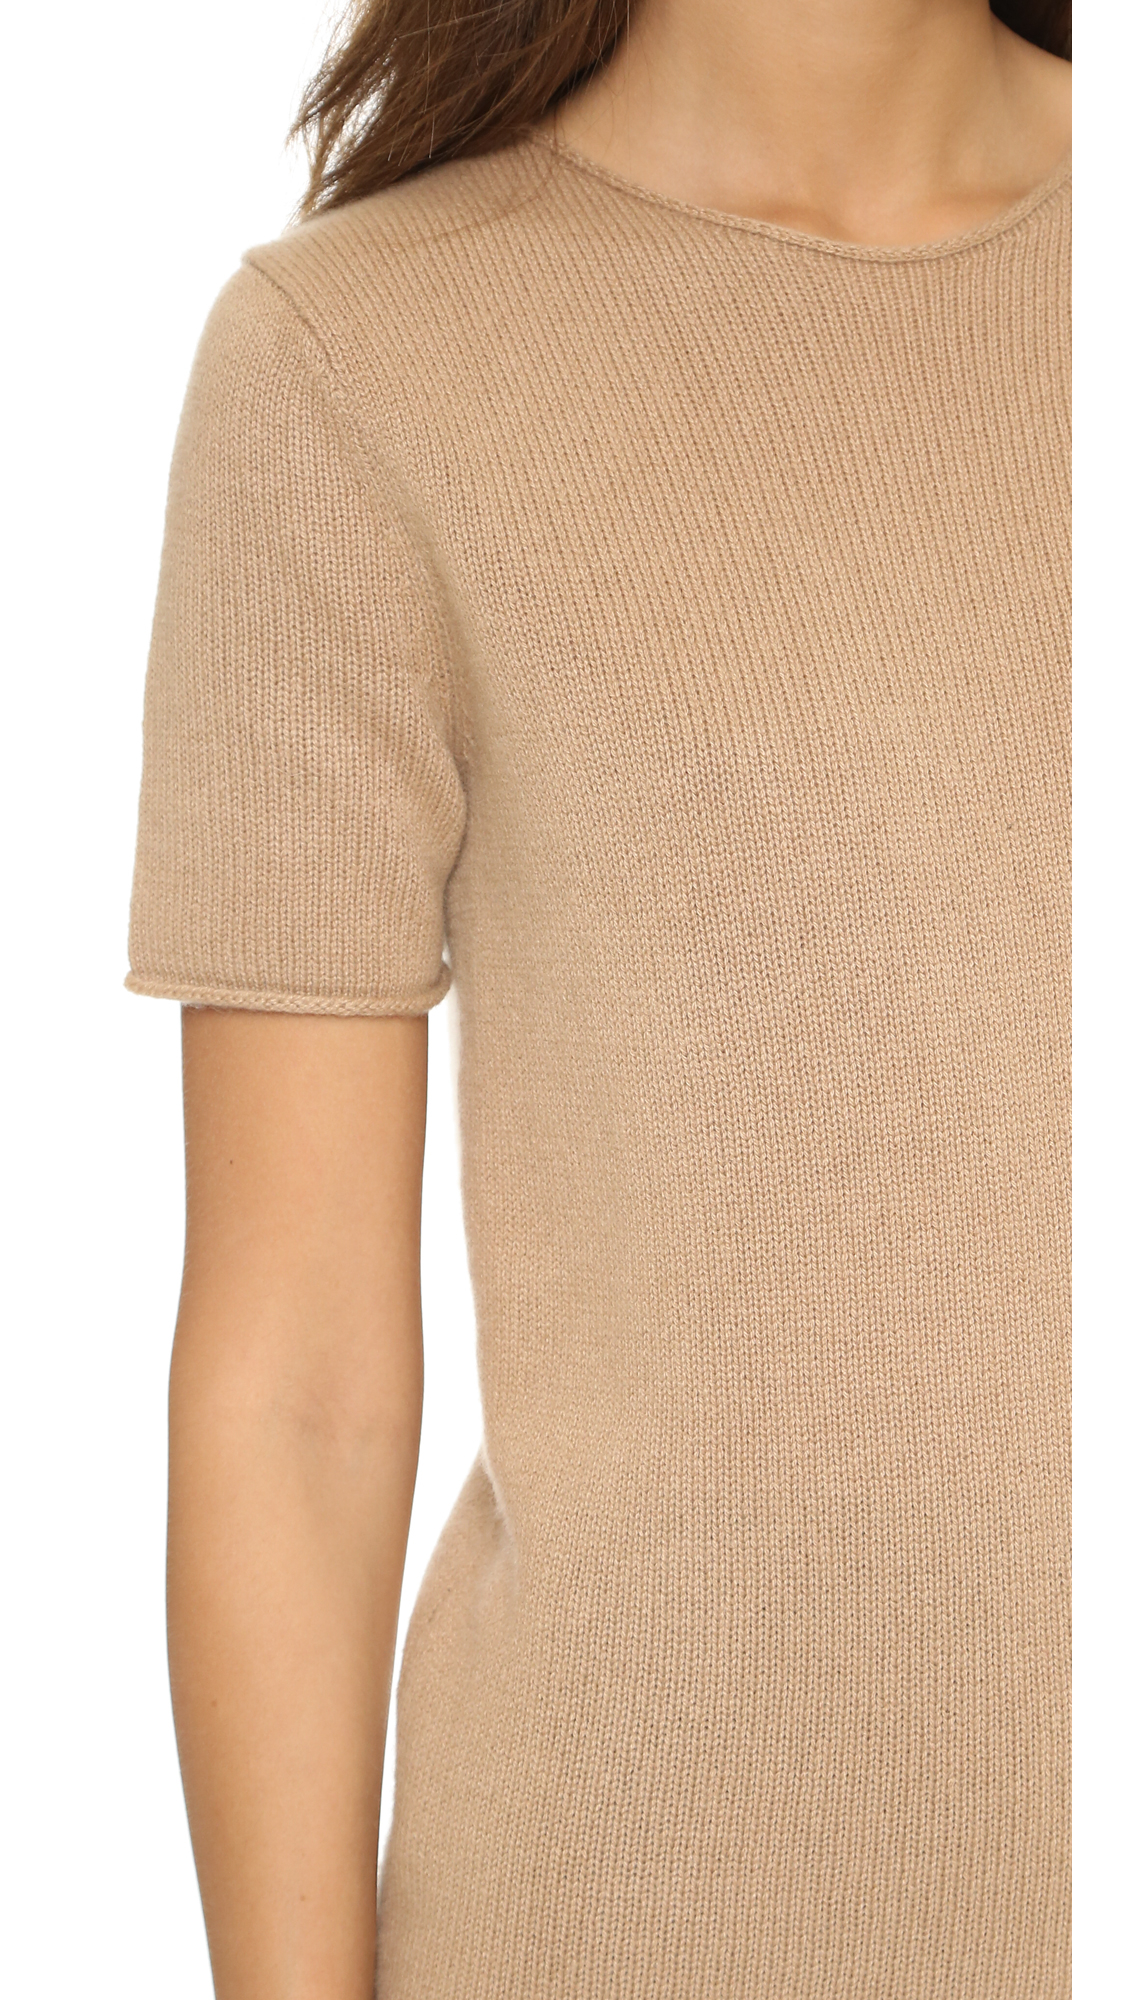 adabcd19973 Theory Cashmere Tolleree Short Sleeve Sweater in Natural - Lyst